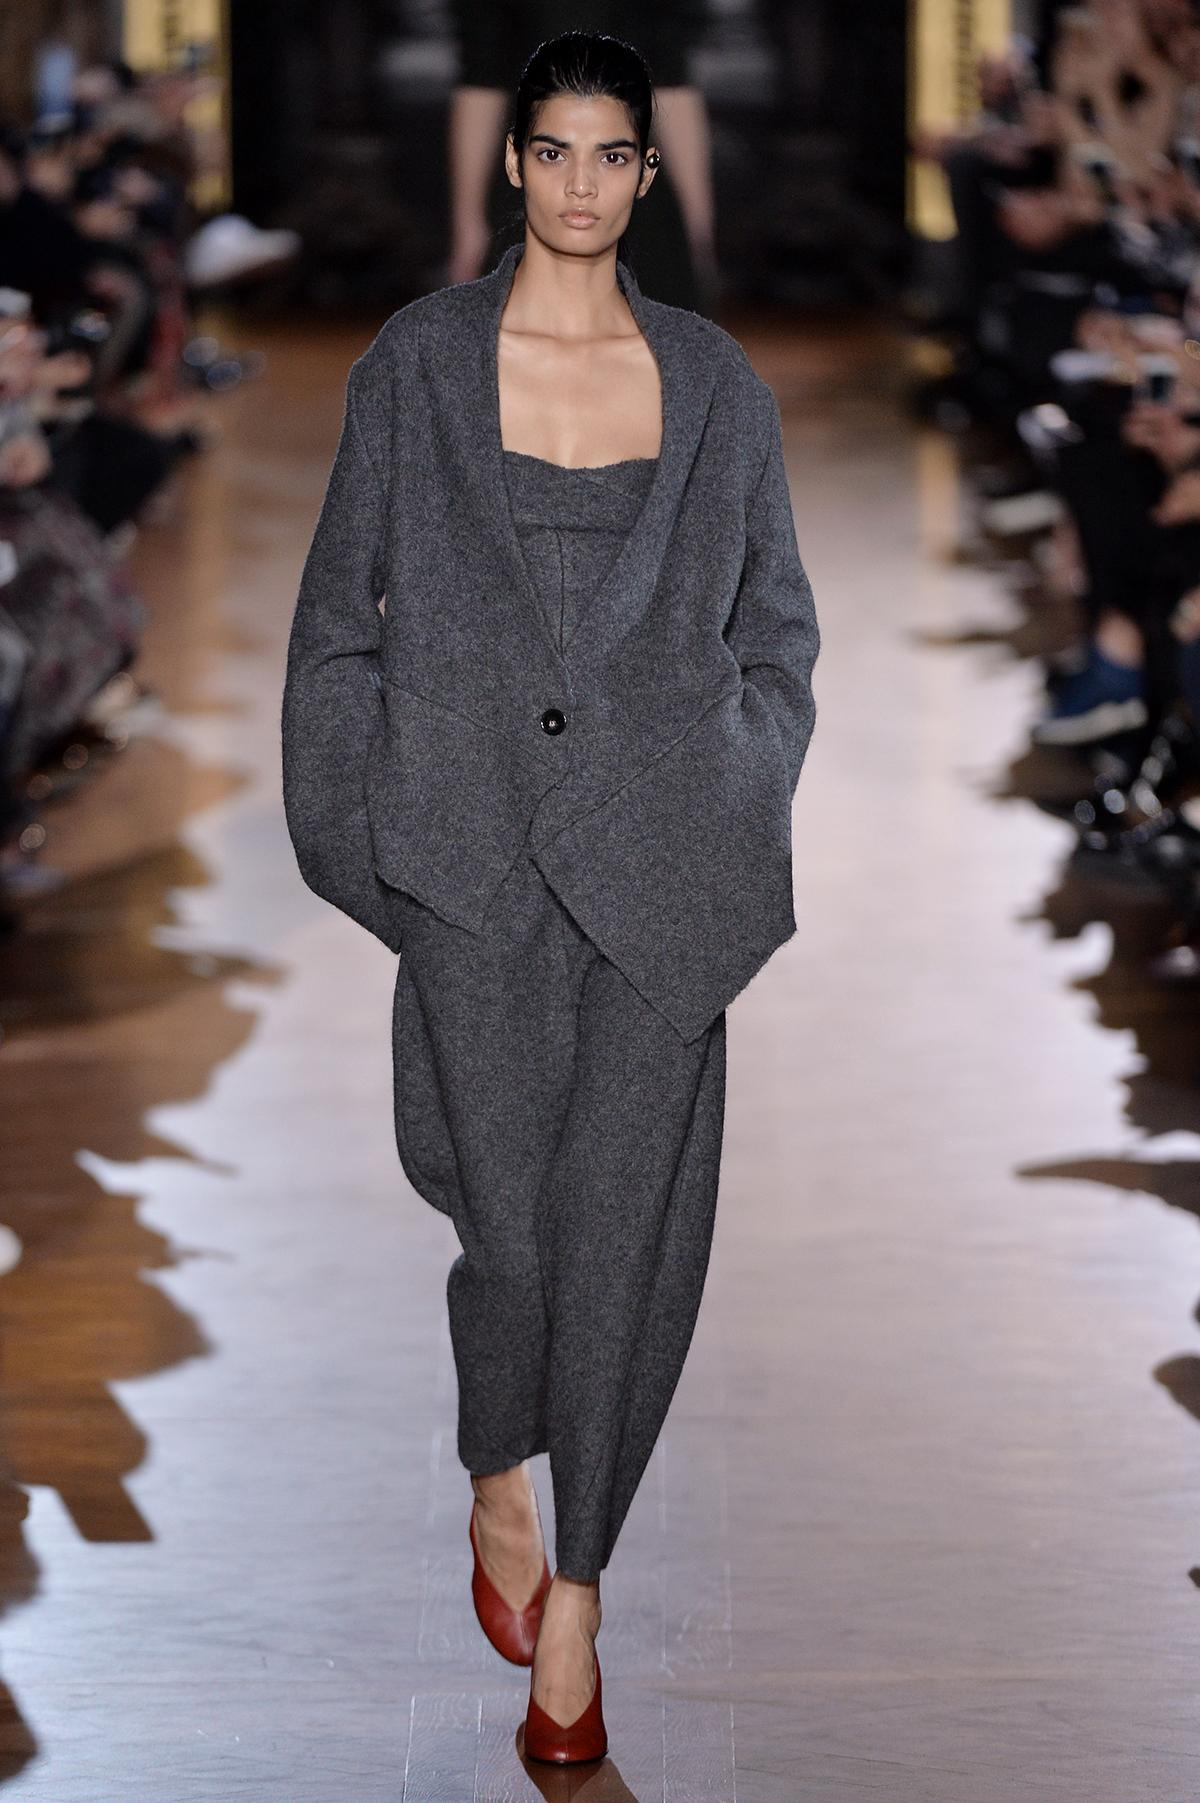 RT @MATCHESFASHION: Effortlessly luxury JUST IN from @StellaMcCartney – shop now: http://t.co/uVaiRTNnoK http://t.co/4UP9Zw5fTG